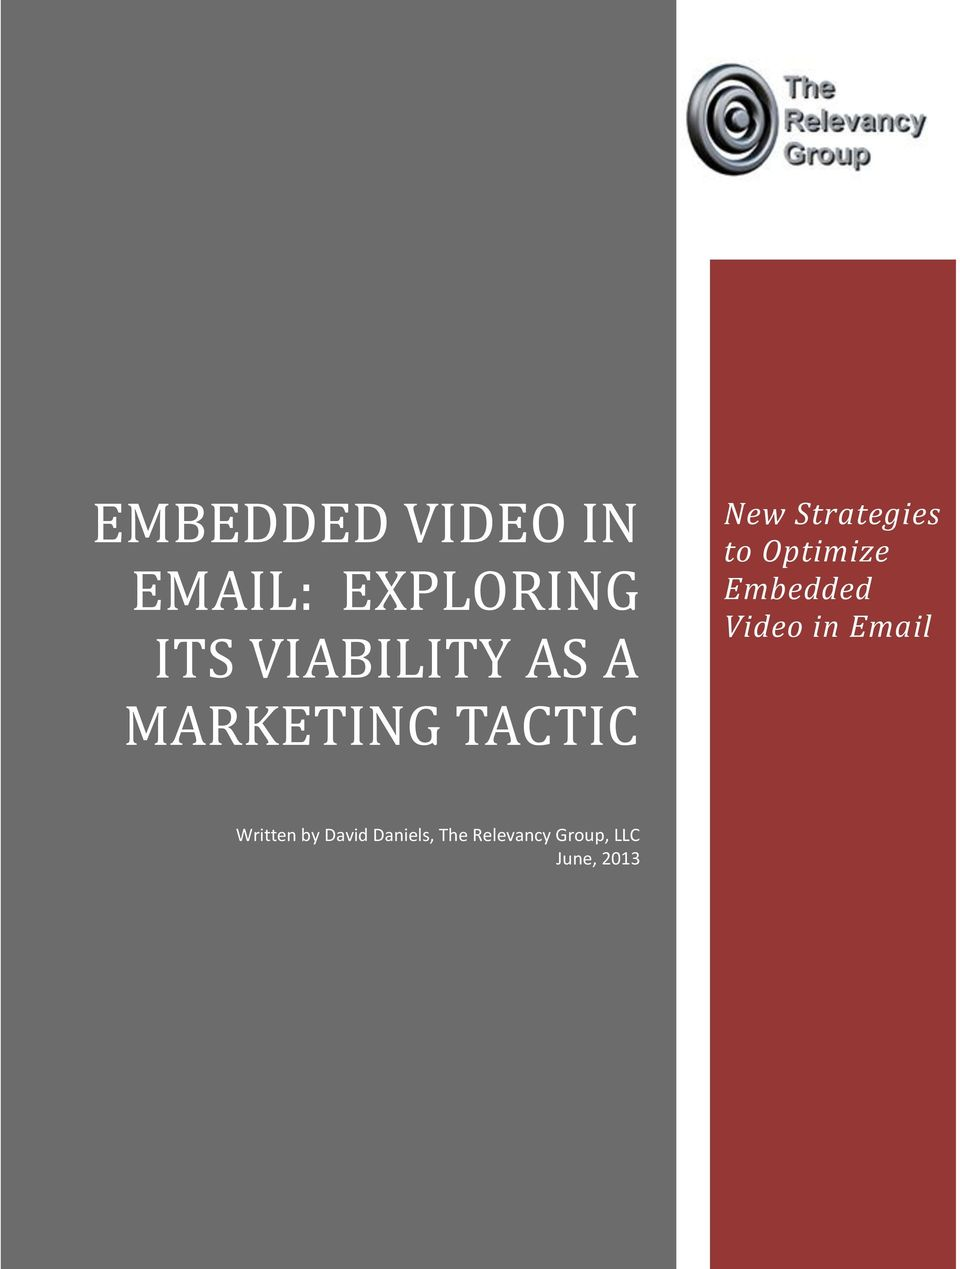 Embedded Video in Email Written by David Daniels,